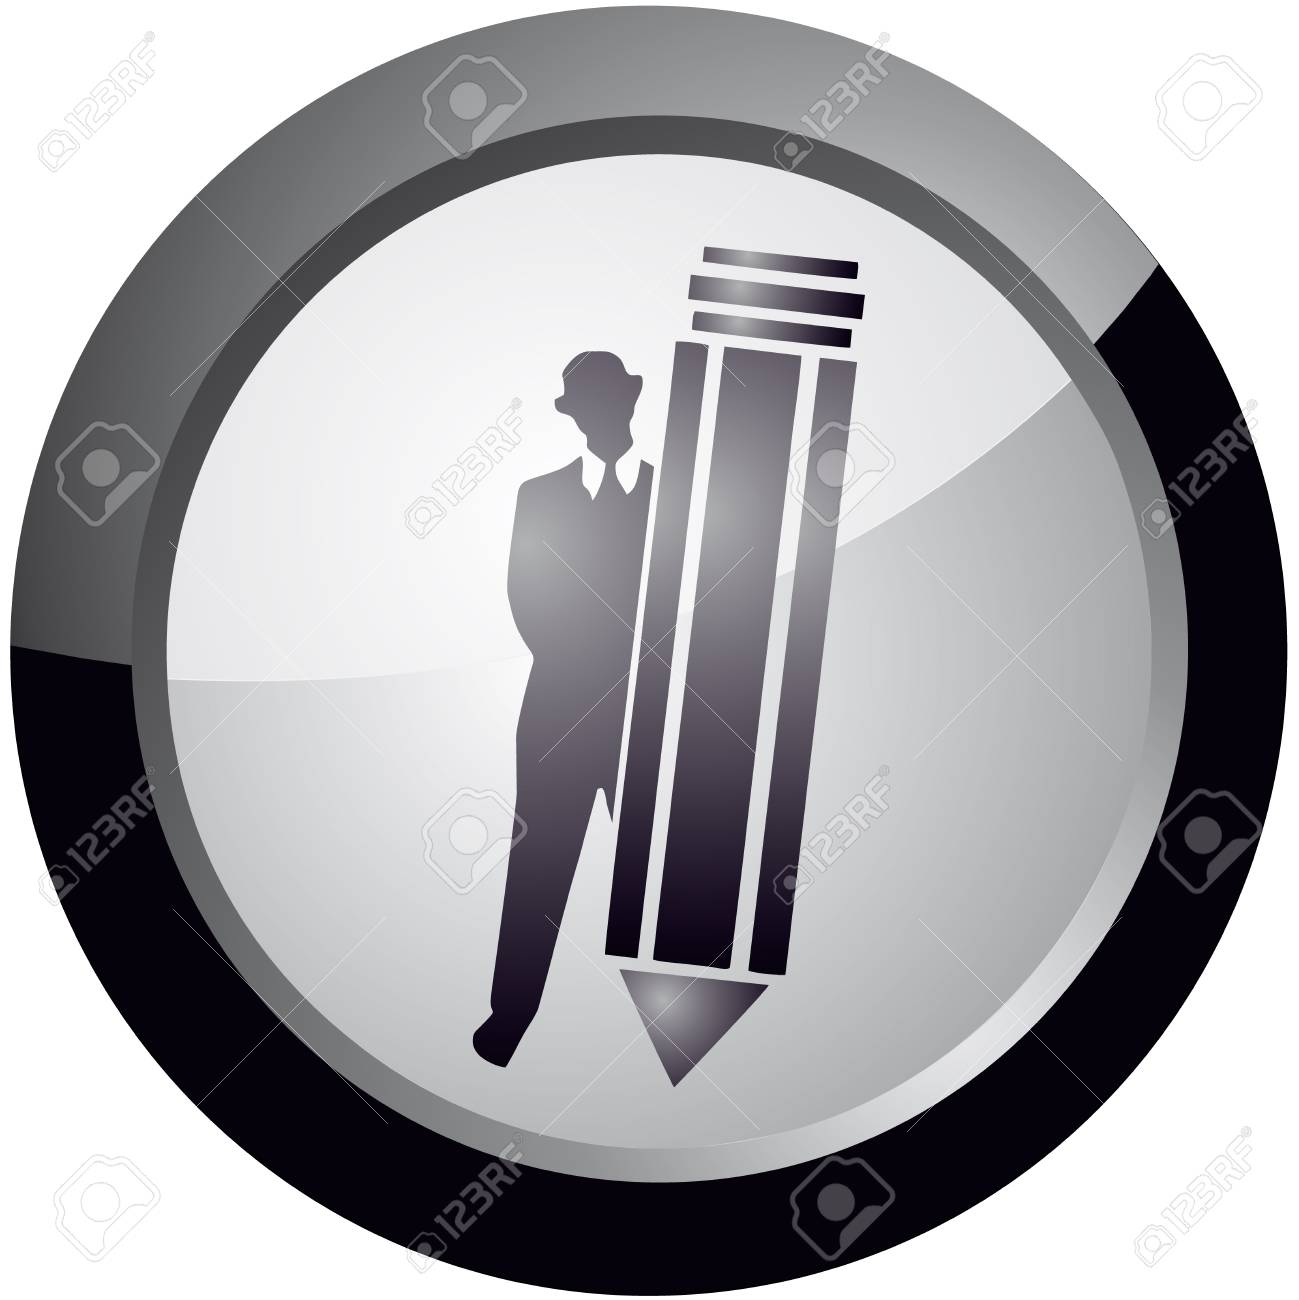 icon in the style of Take note, vector Stock Vector - 18512615